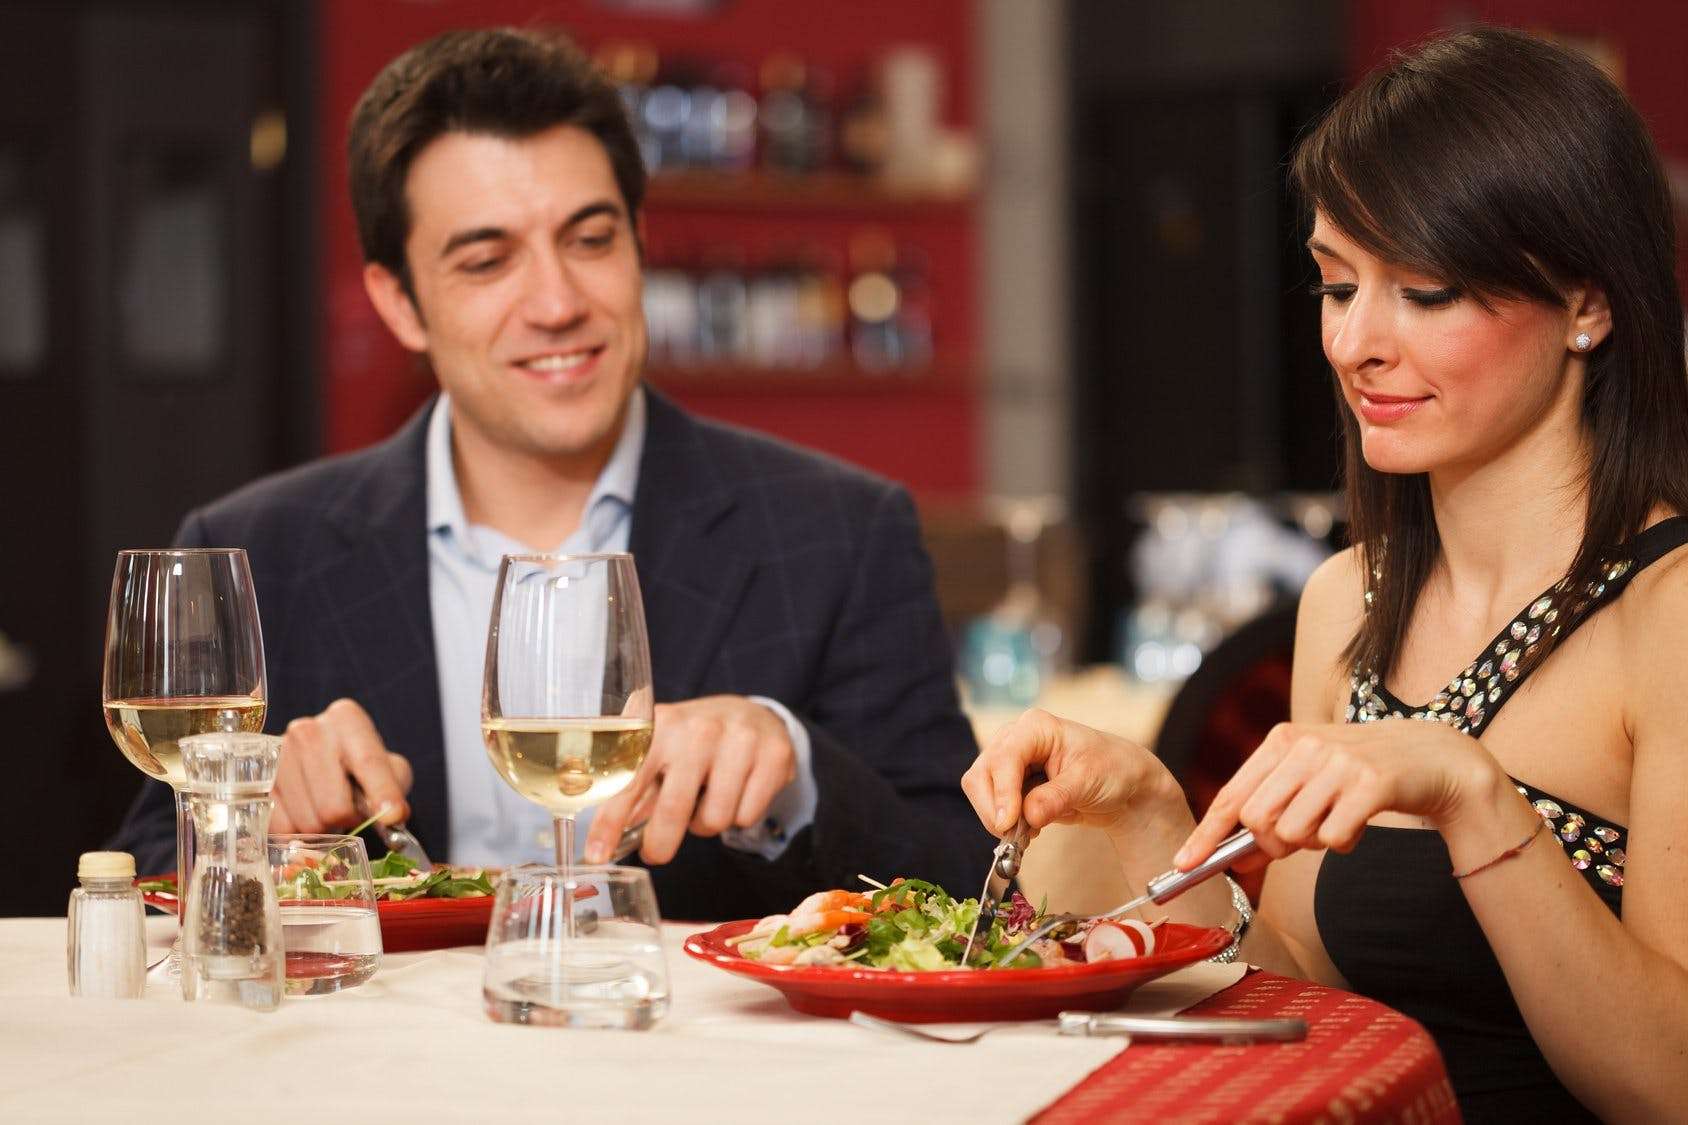 First date lunch or dinner